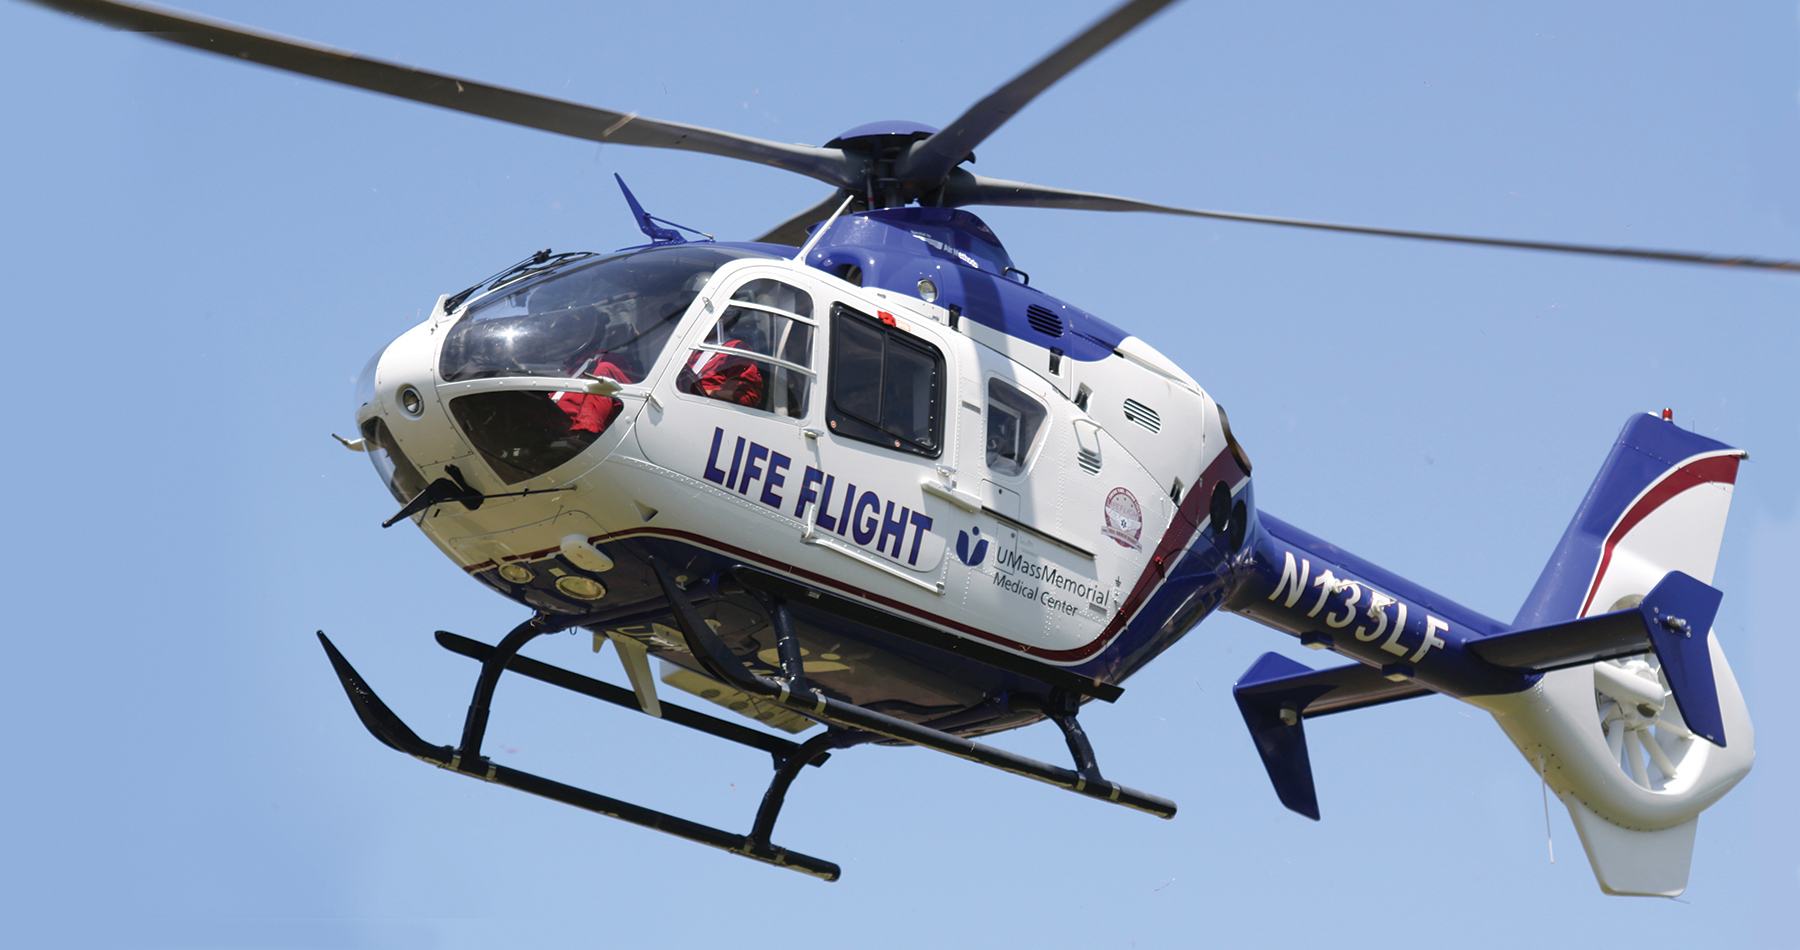 Life Flight Air Ambulance